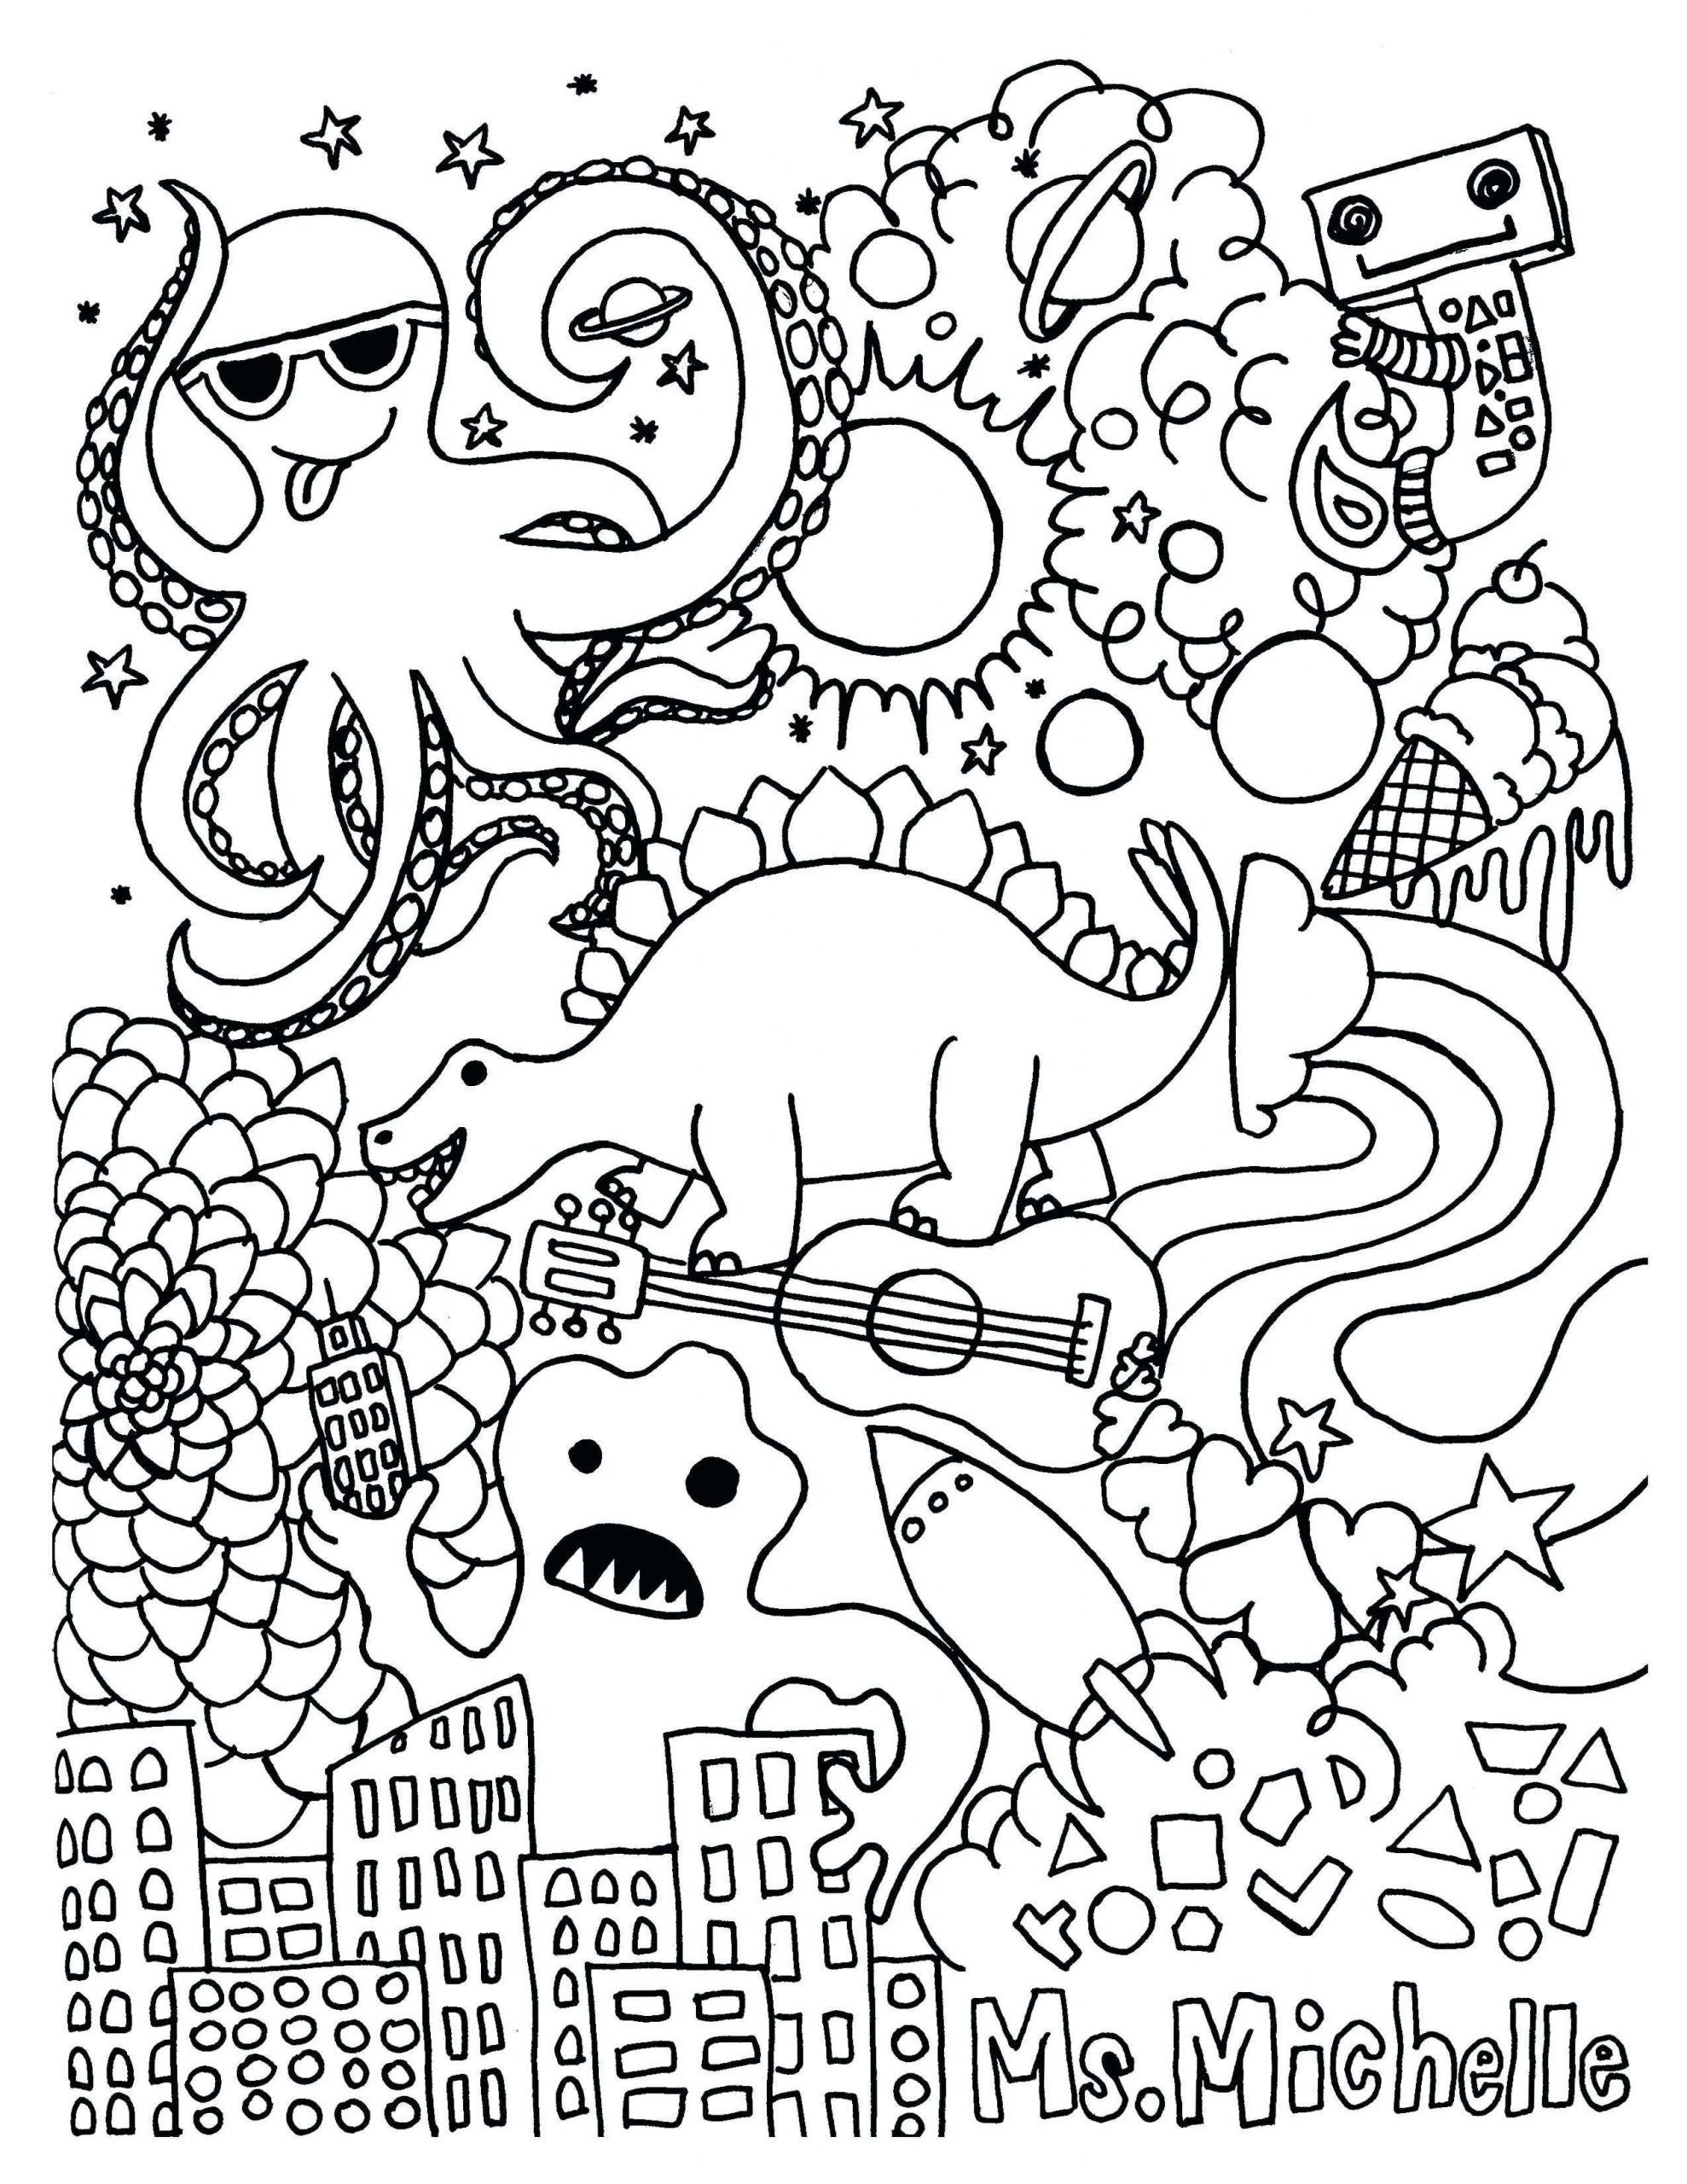 5 Worksheet Unicorn Coloring Pages For Adults Coloring Snowflake Coloring Pages Easy In 2020 Princess Coloring Pages Fall Coloring Pages Disney Princess Coloring Pages